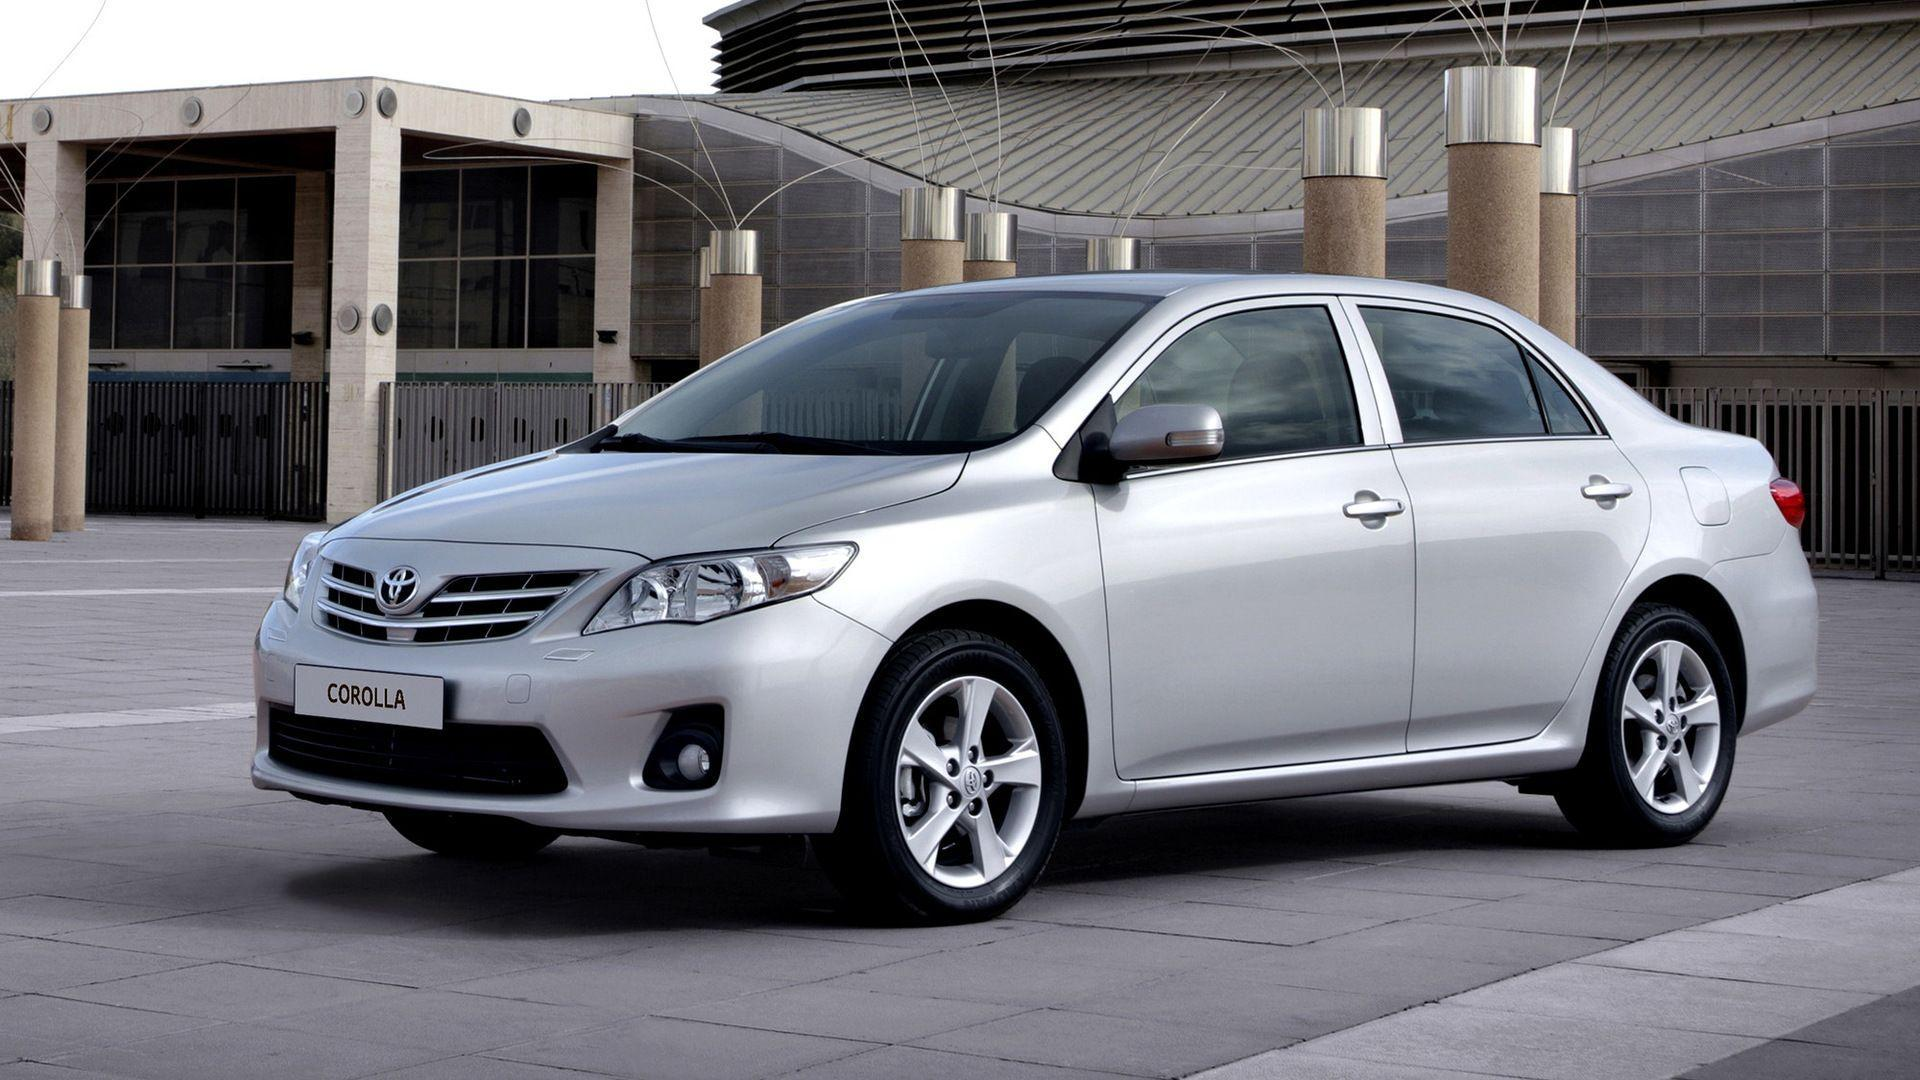 Toyota Corolla (2010) EU Wallpapers and HD Images - Car Pixel